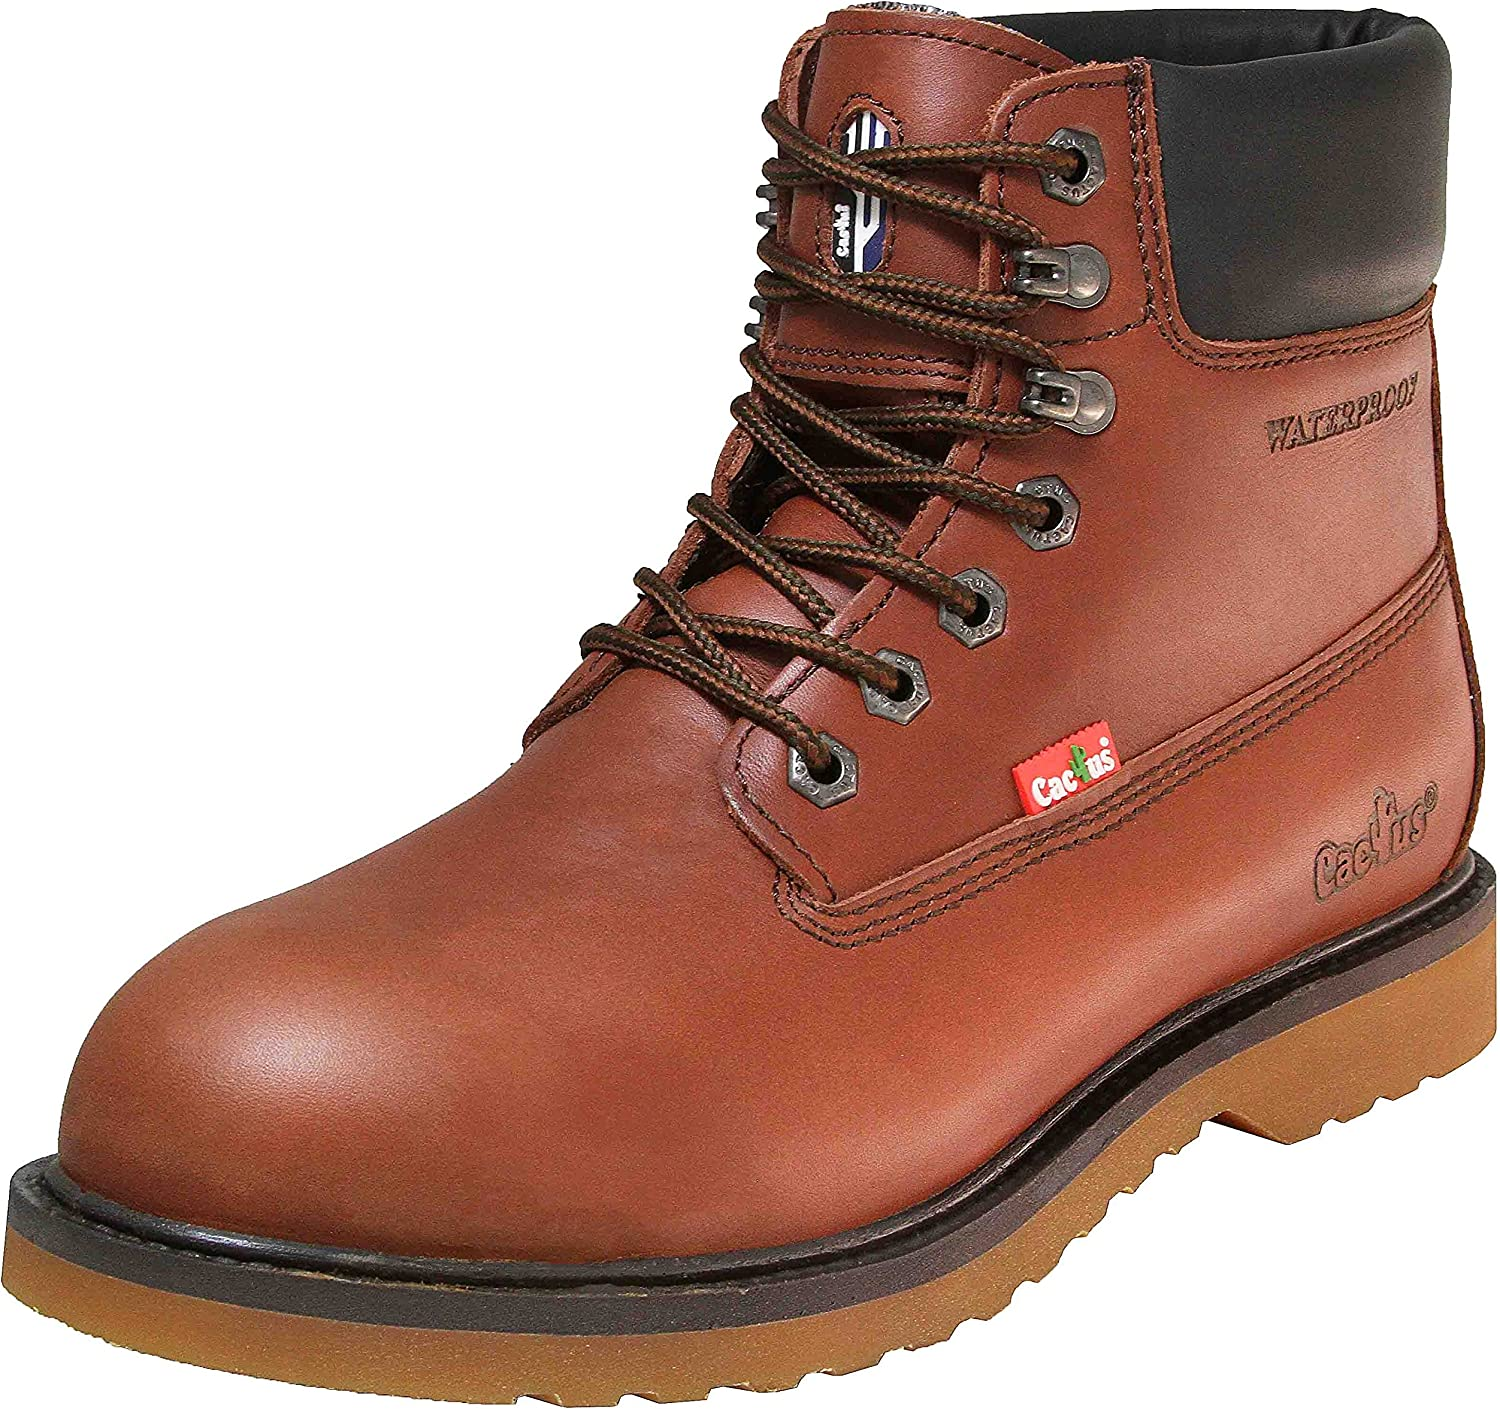 WP6118 Brown Water-Proof Work Boots   Boots